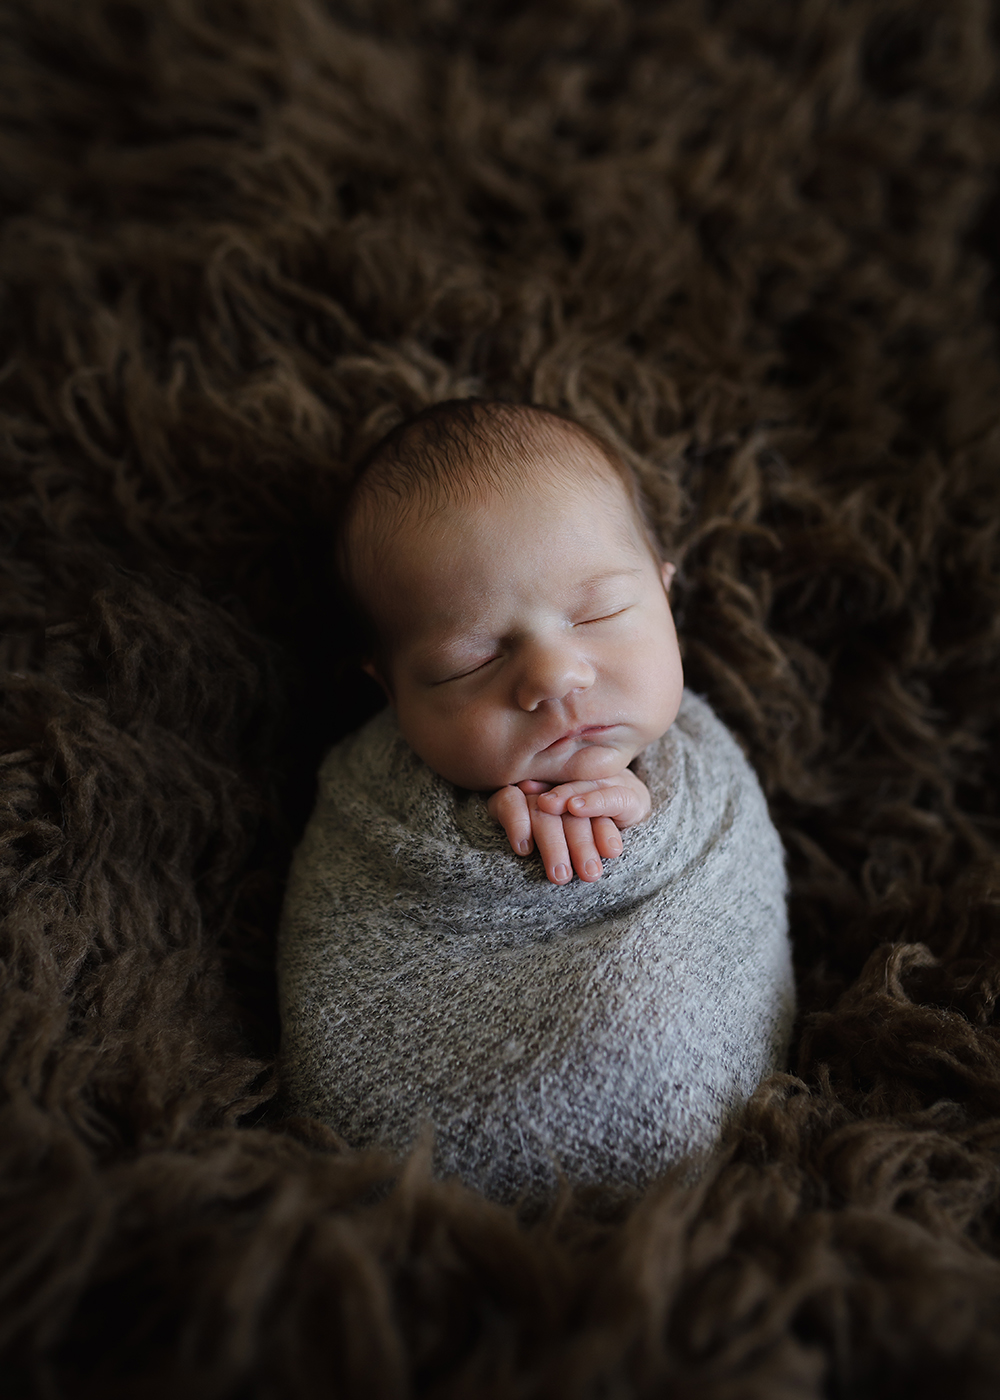 Edmonton Newborn Photographer_Baby Oliver Sneak Peek 3.jpg